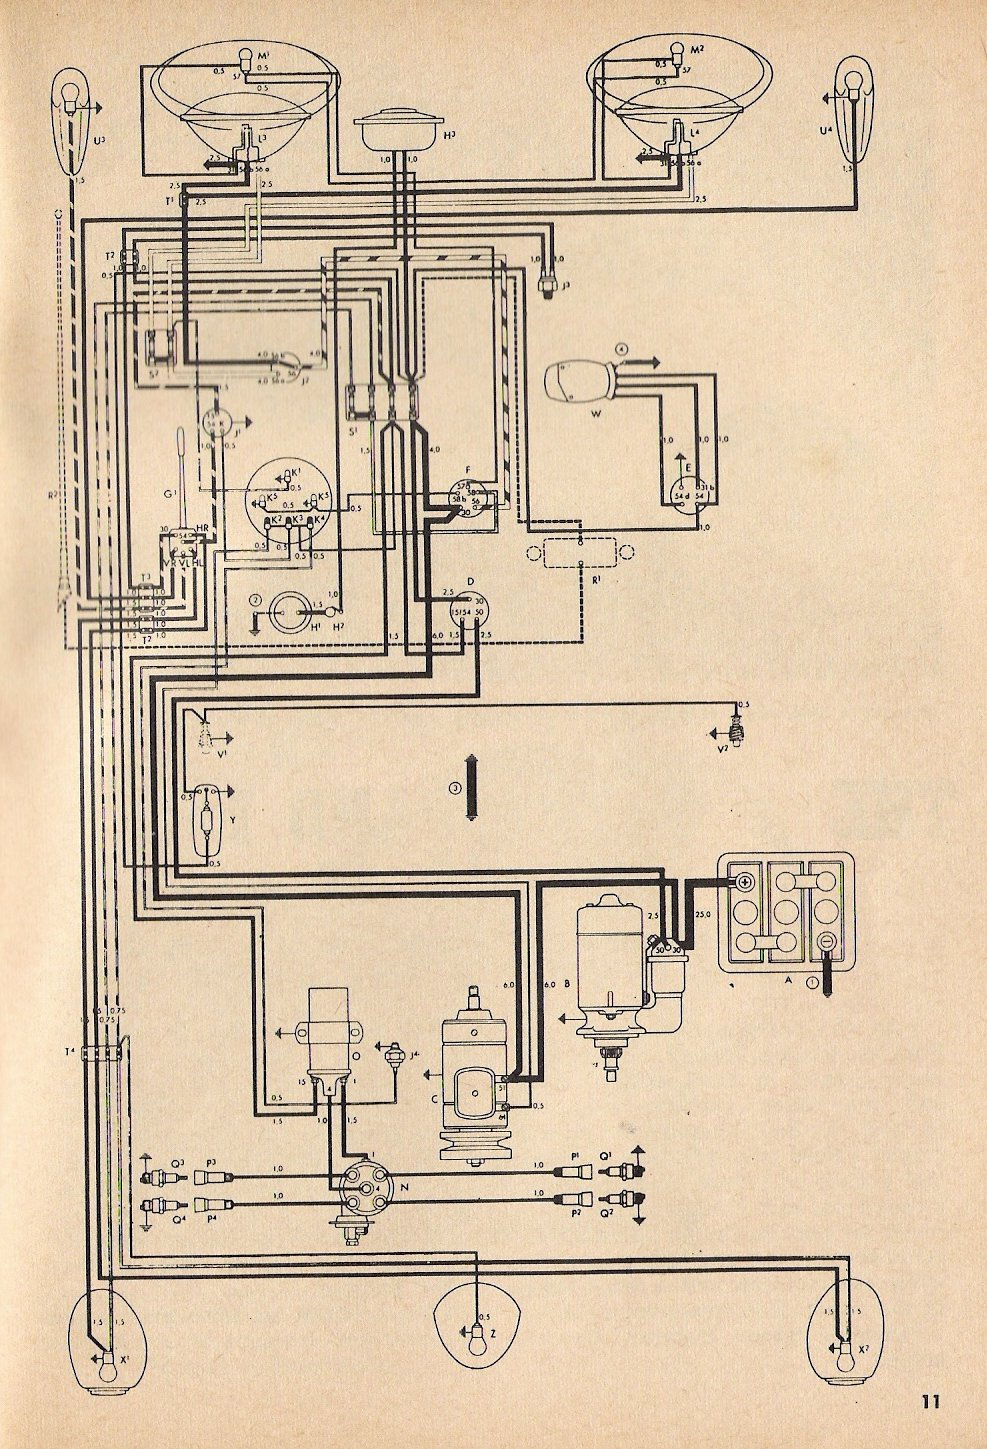 Type 1 Wiring Diagrams 57 Chevy Starter Diagram